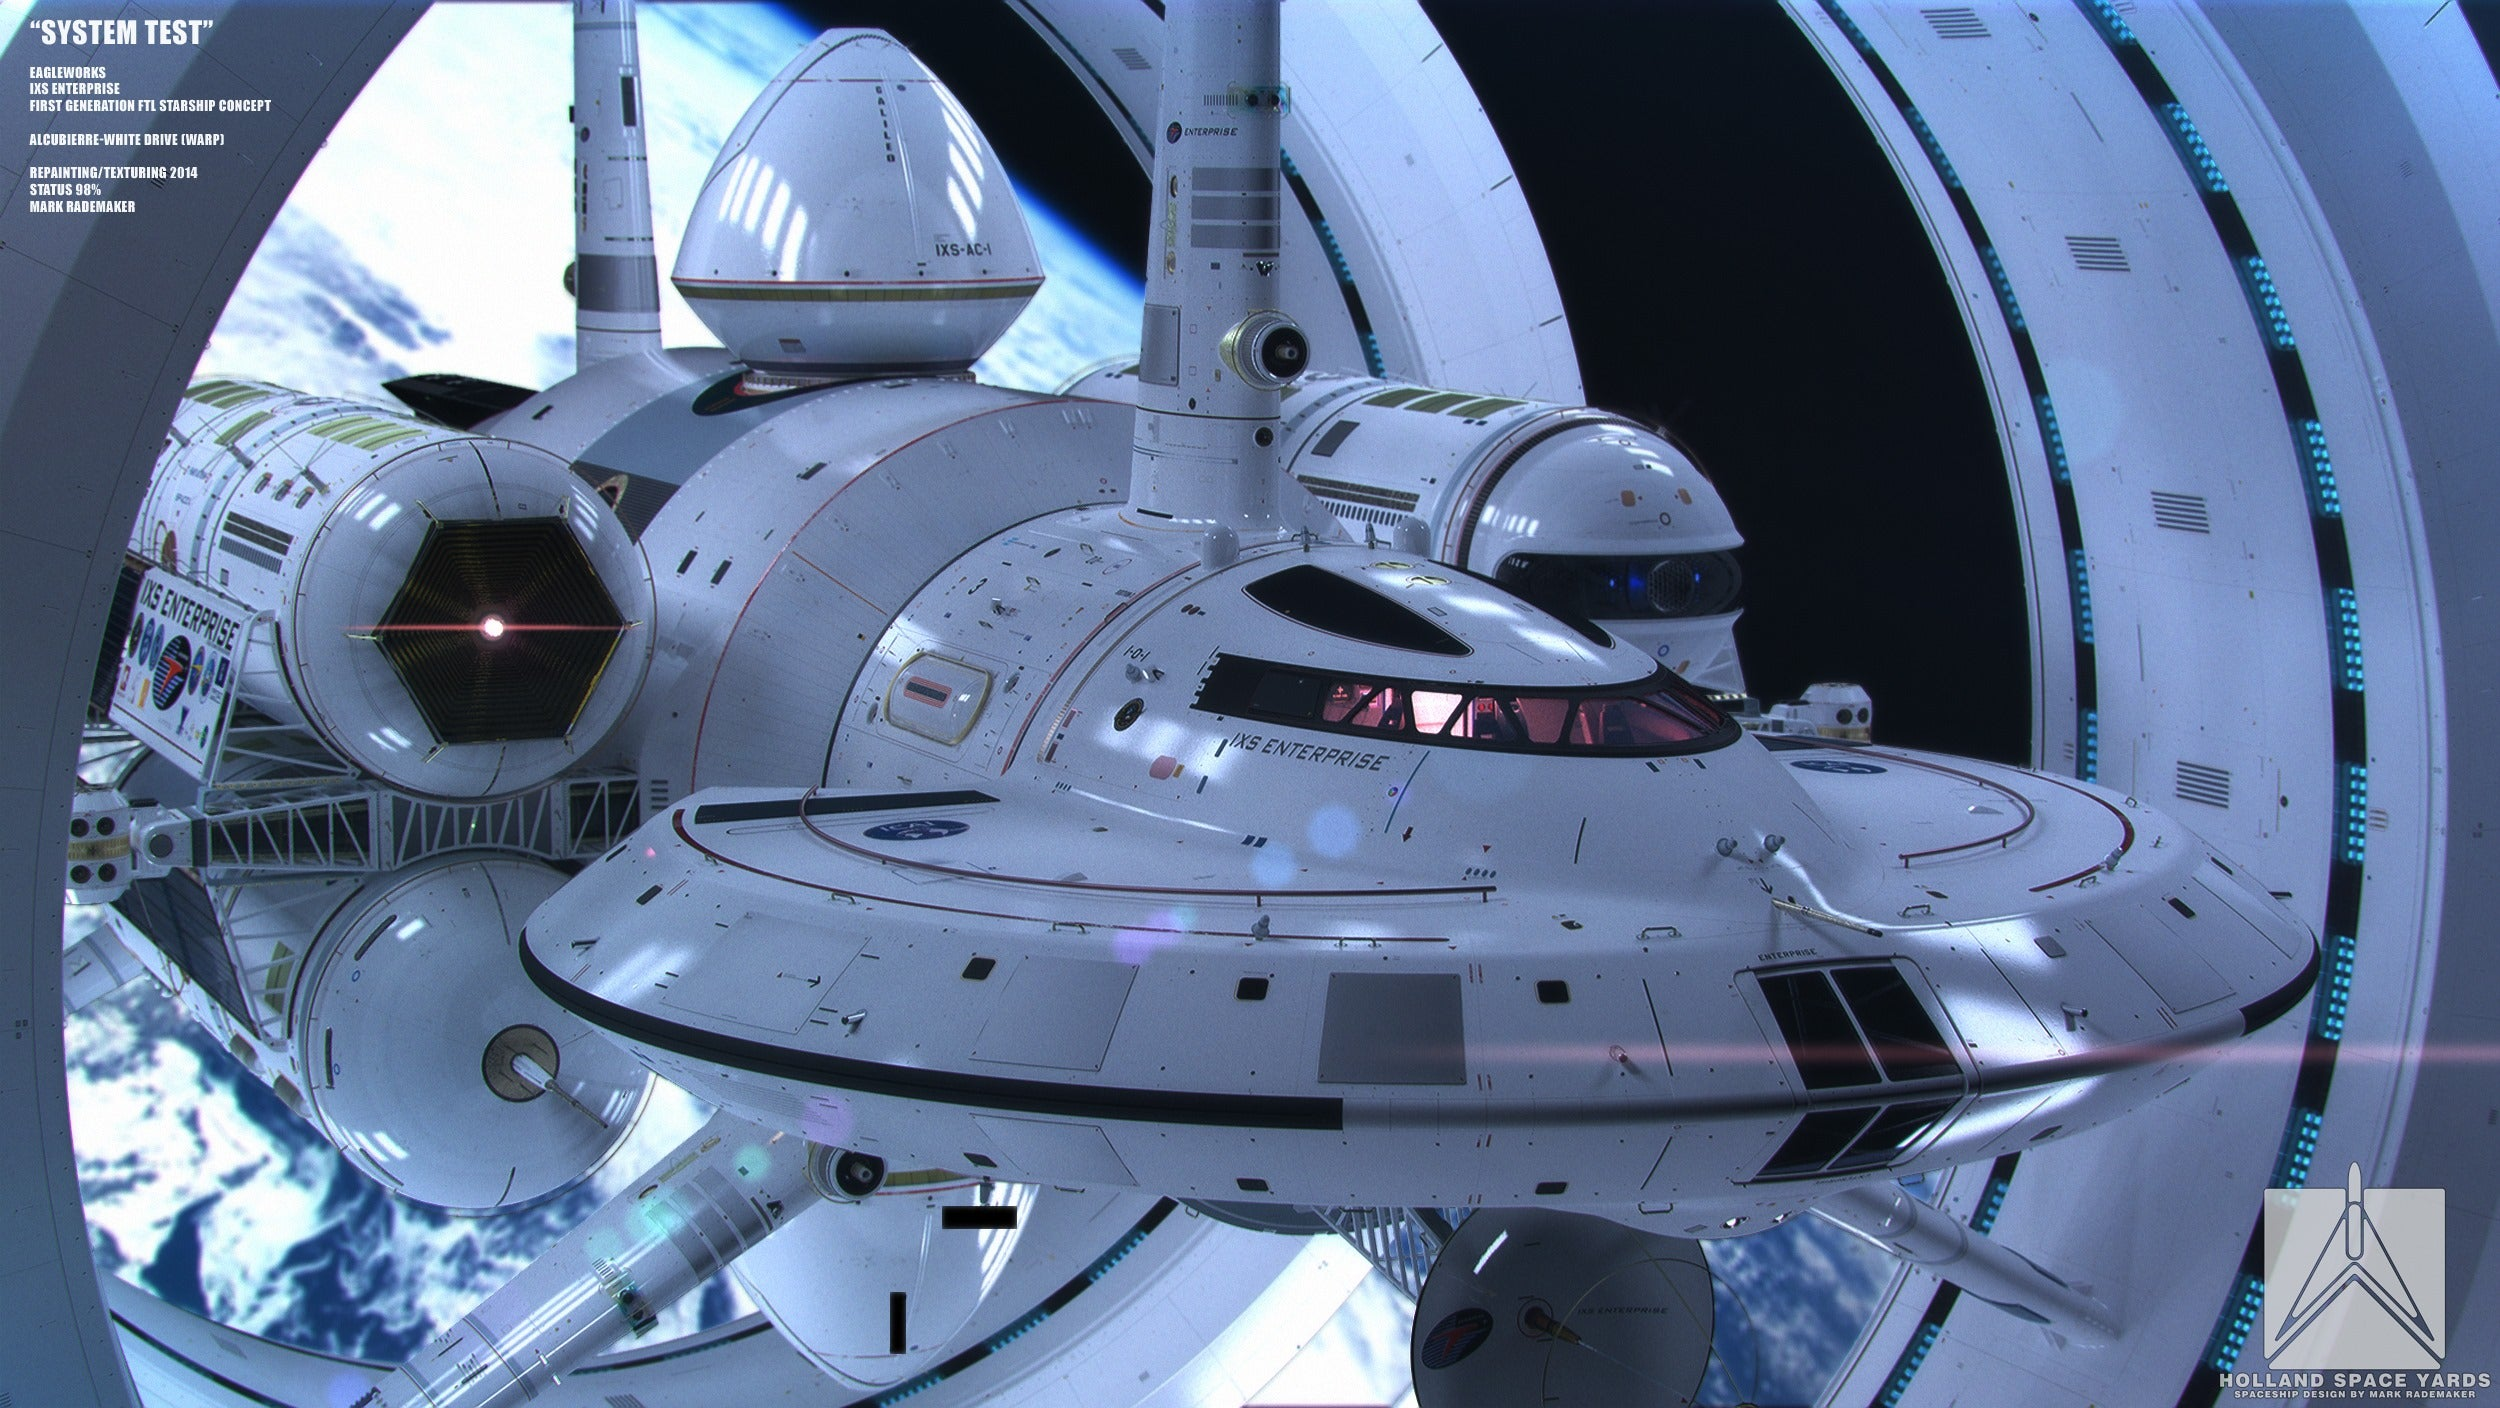 Here's NASA's New Design for a Warp Drive Ship